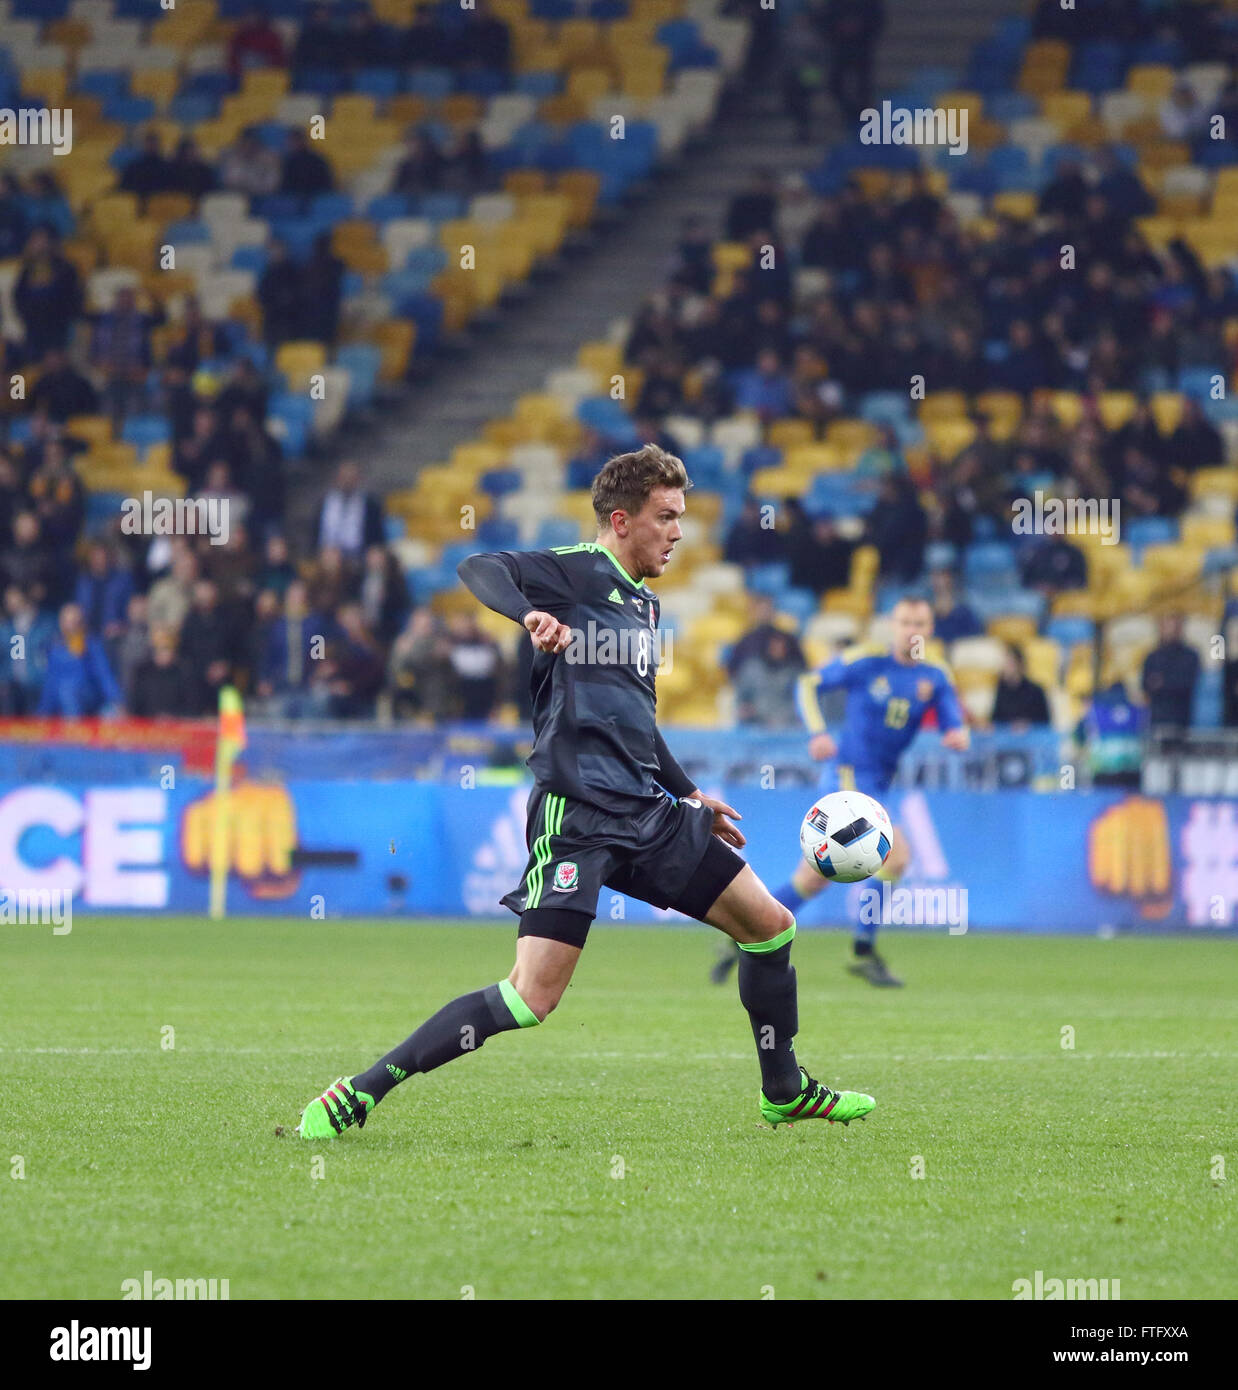 Kyiv, Ukraine. 28th March, 2016. Emyr Huws of Wales (№8) controls a ball during the Friendly match against Ukraine Stock Photo